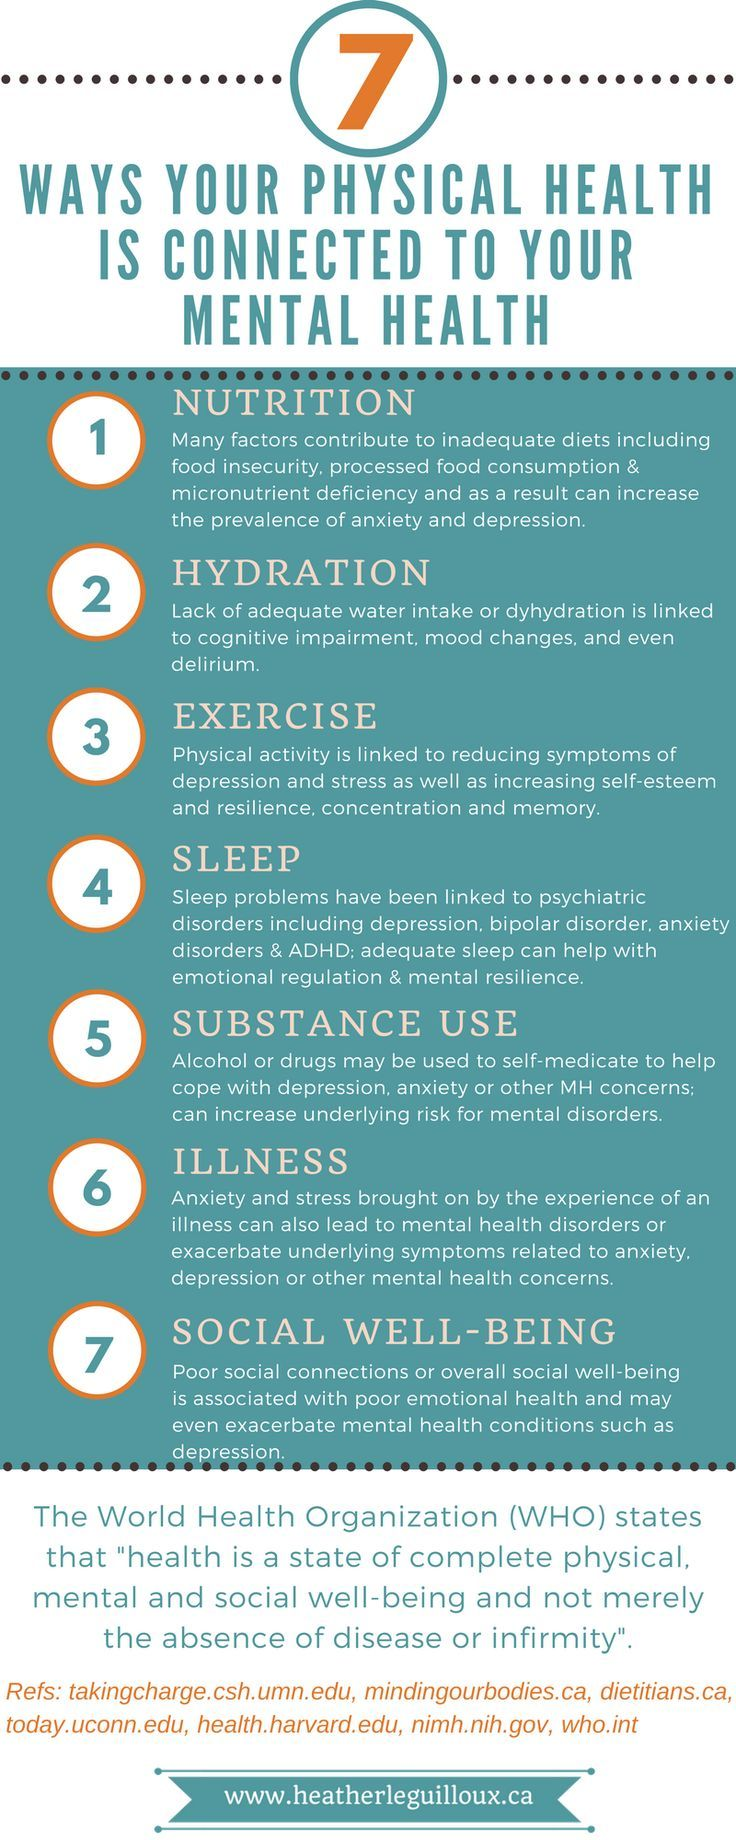 7 Ways Your Physical Health is Connected to Your Mental